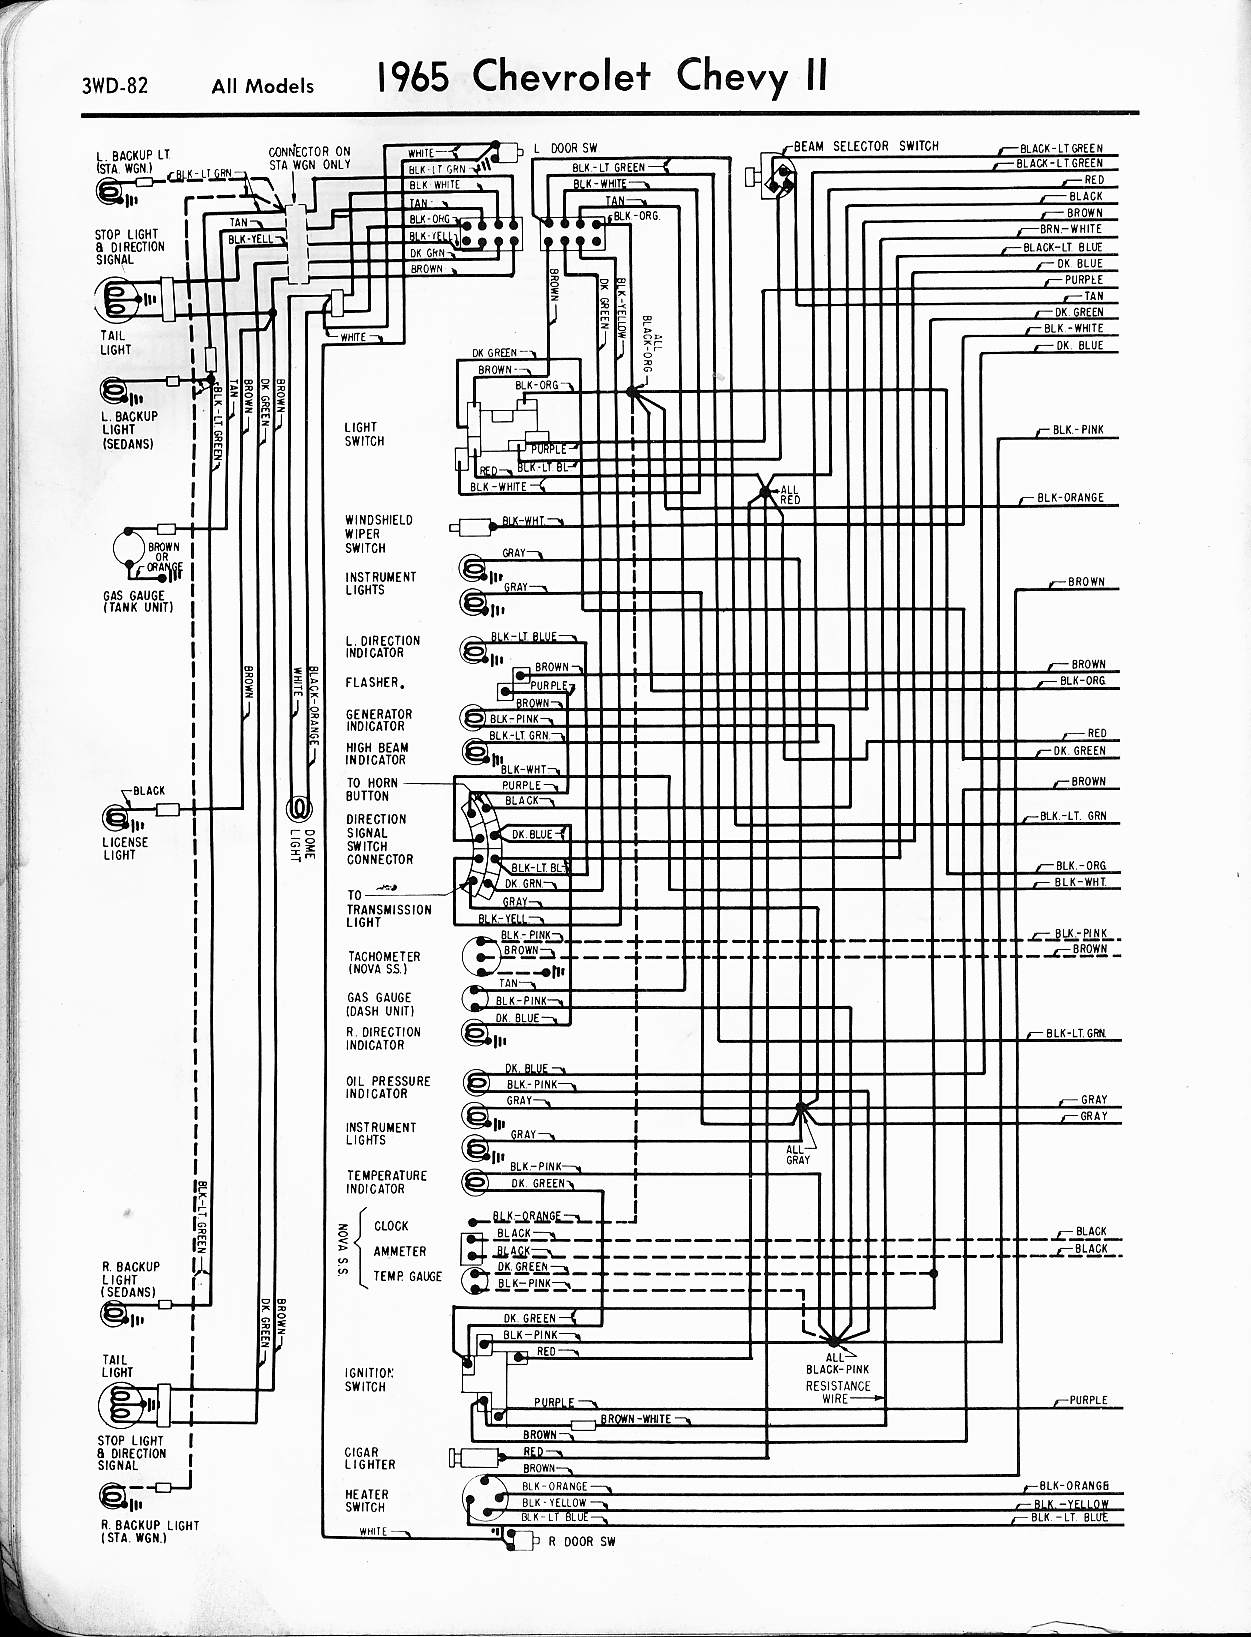 chevy diagrams rh wiring wizard com 1975 Chevy Truck Wiring Diagram Chevy Silverado Wiring Diagram